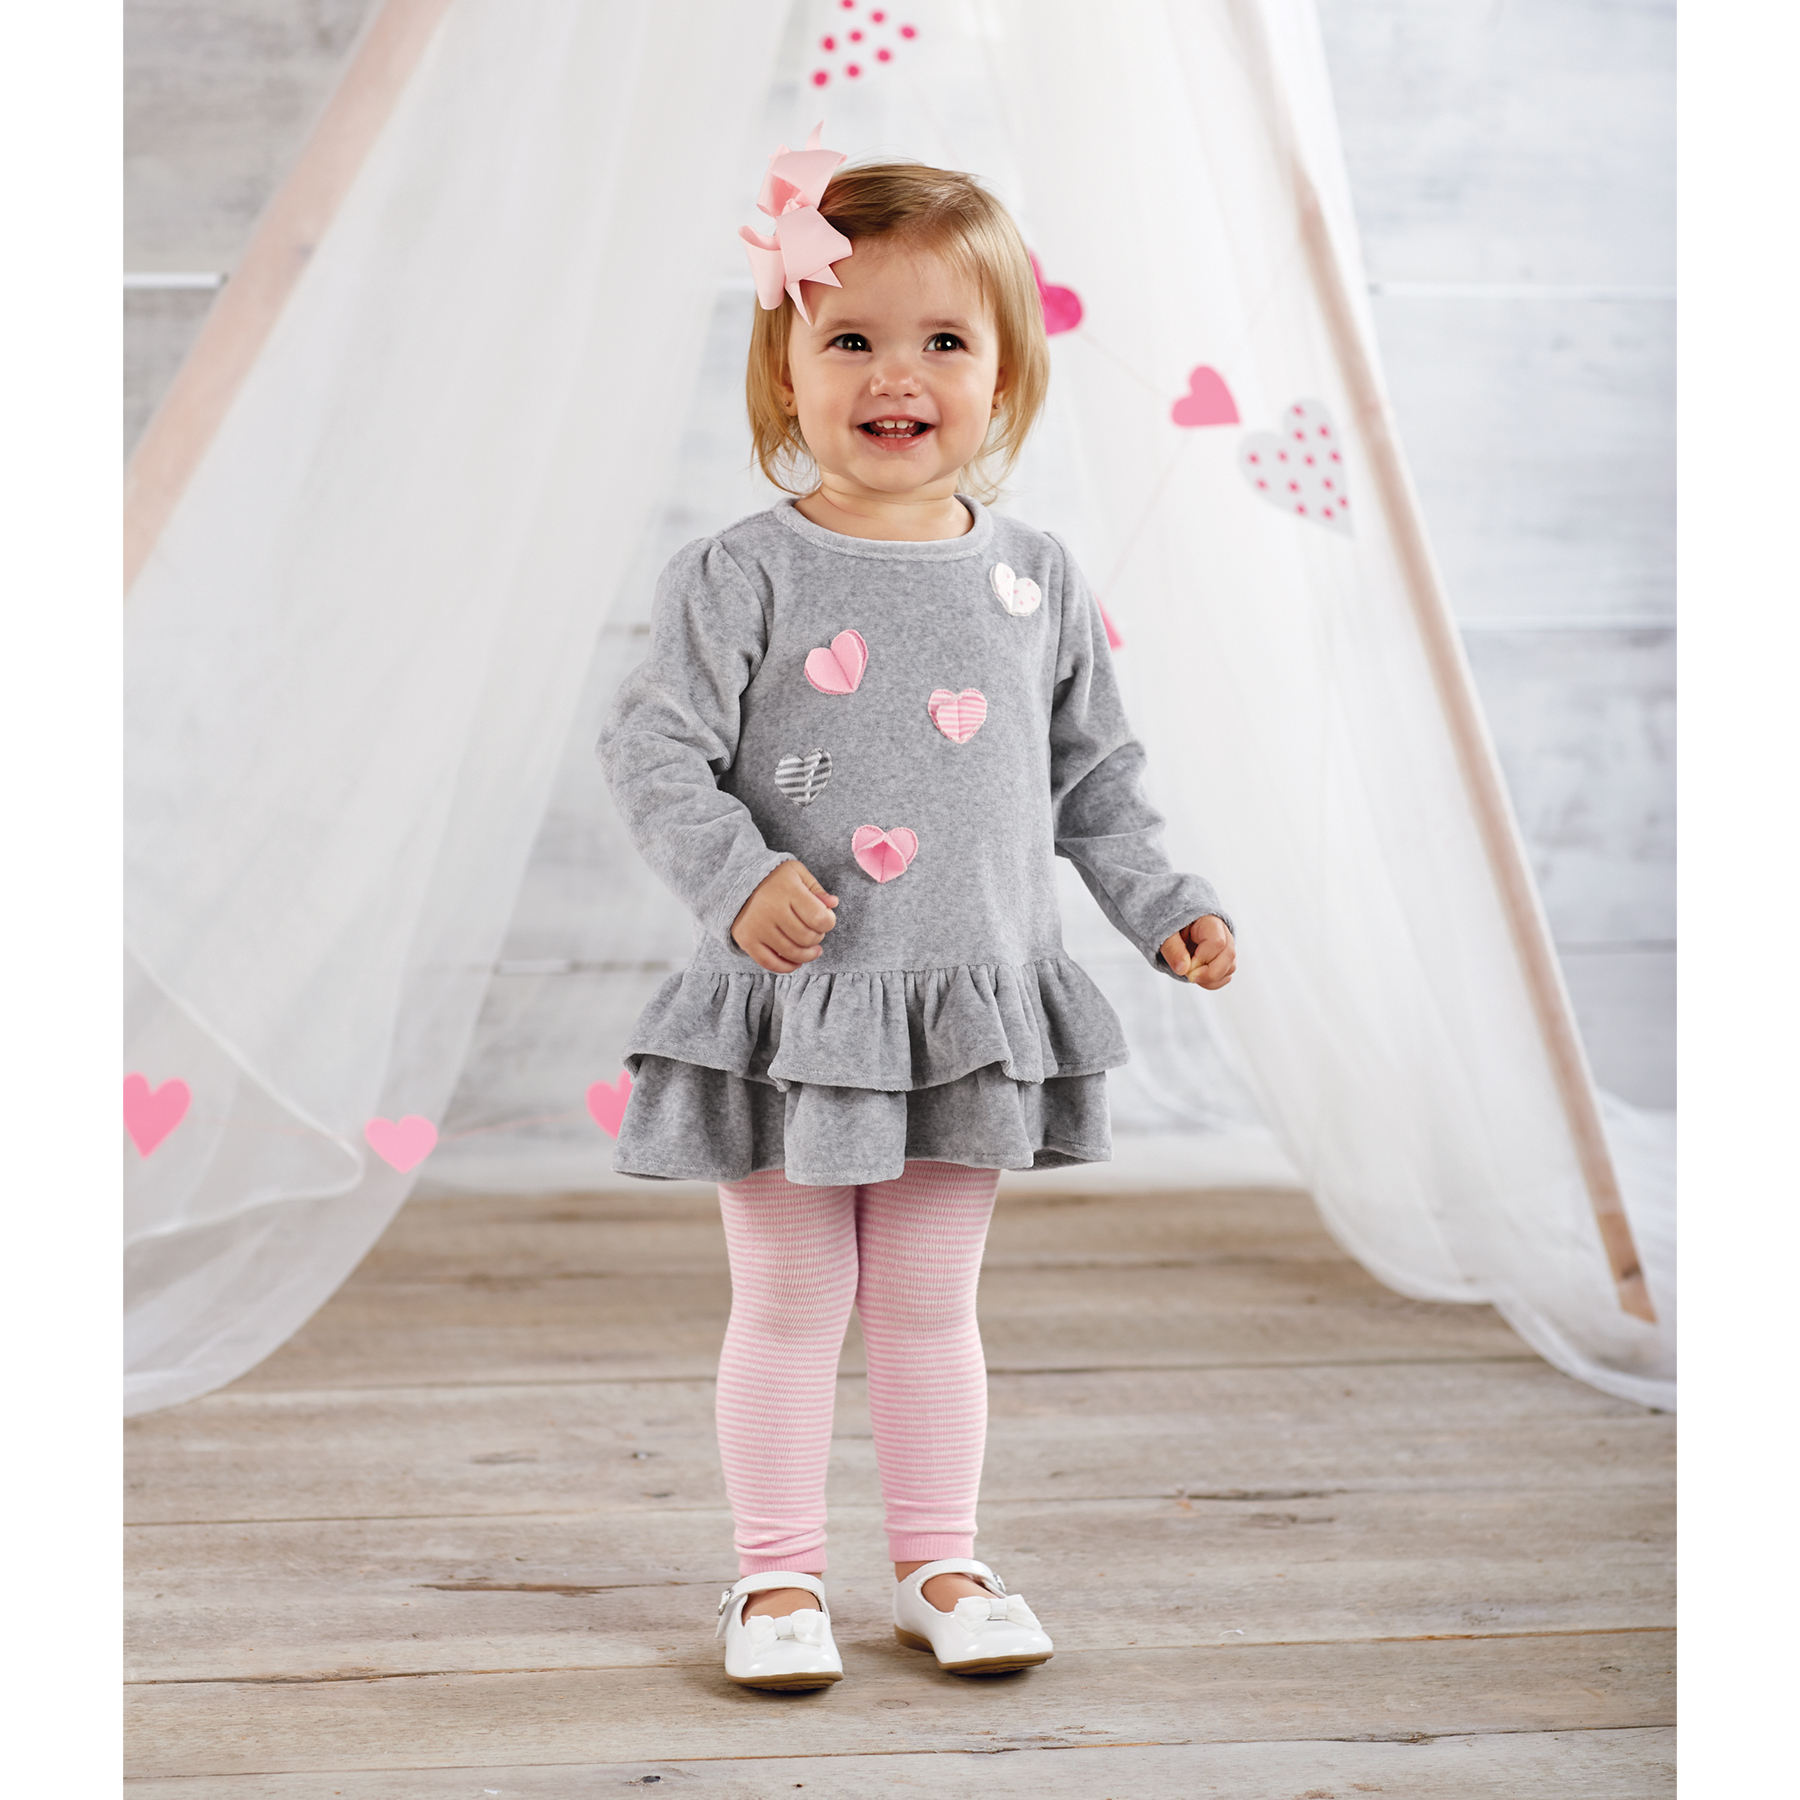 You searched for: baby girl tunic! Etsy is the home to thousands of handmade, vintage, and one-of-a-kind products and gifts related to your search. No matter what you're looking for or where you are in the world, our global marketplace of sellers can help you find unique and affordable options. Let's get started!